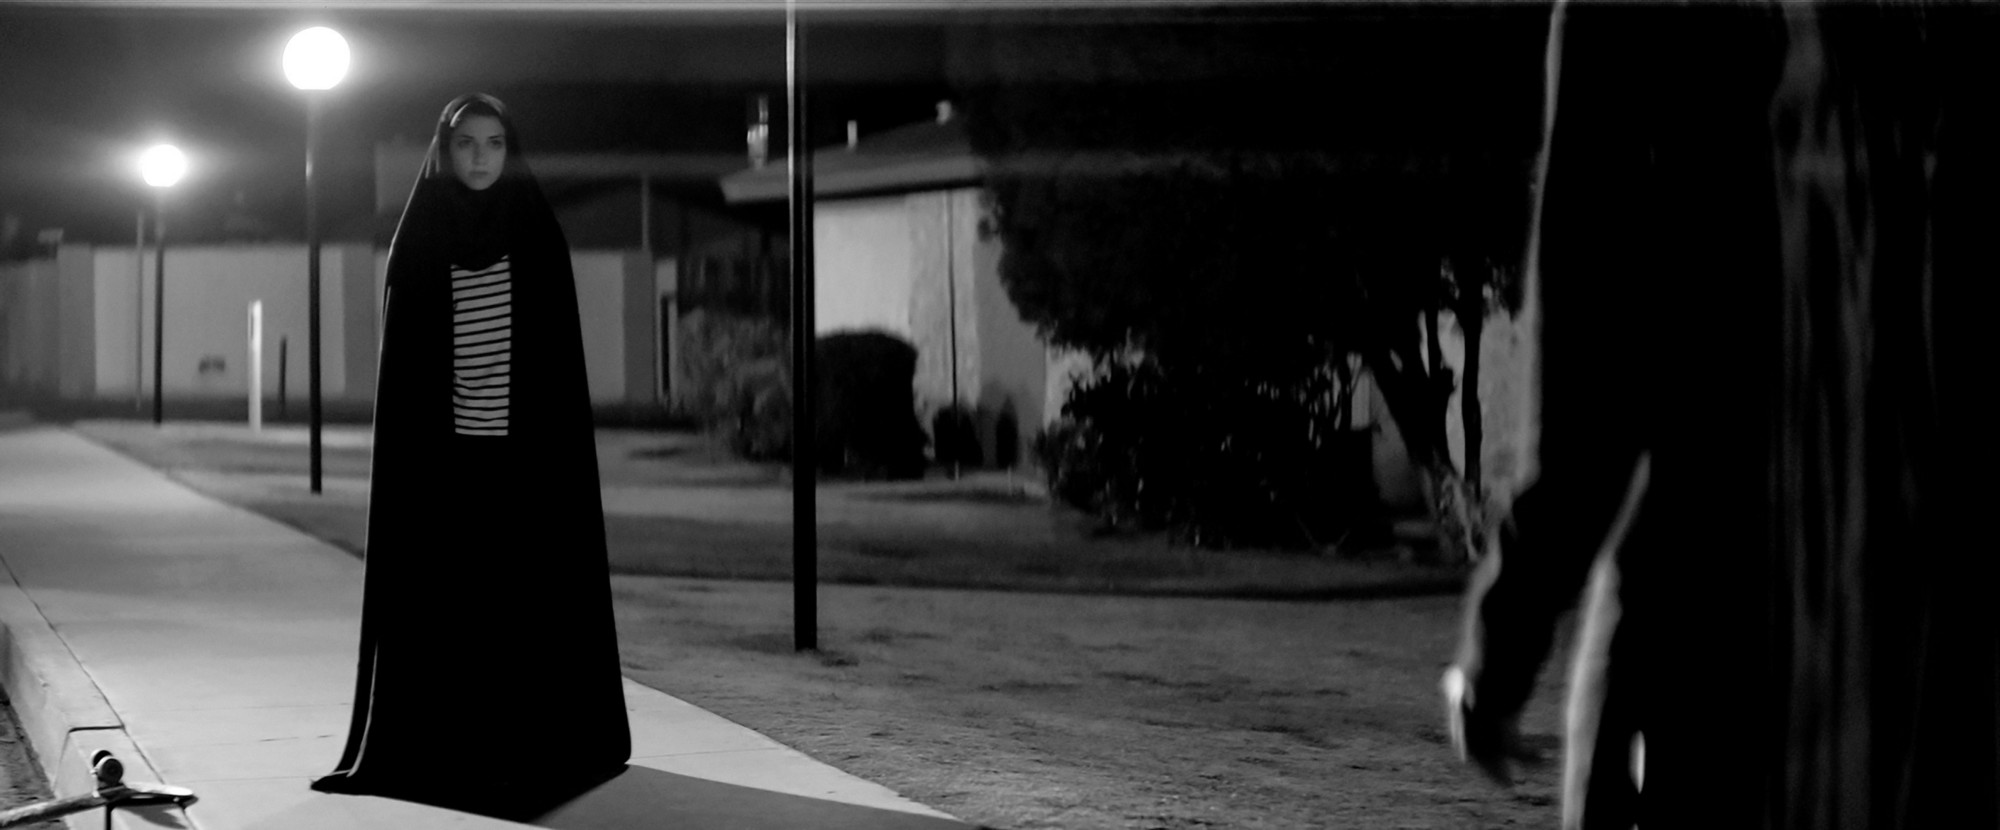 A female vampire wearing a chador stands looking at an unseen character.